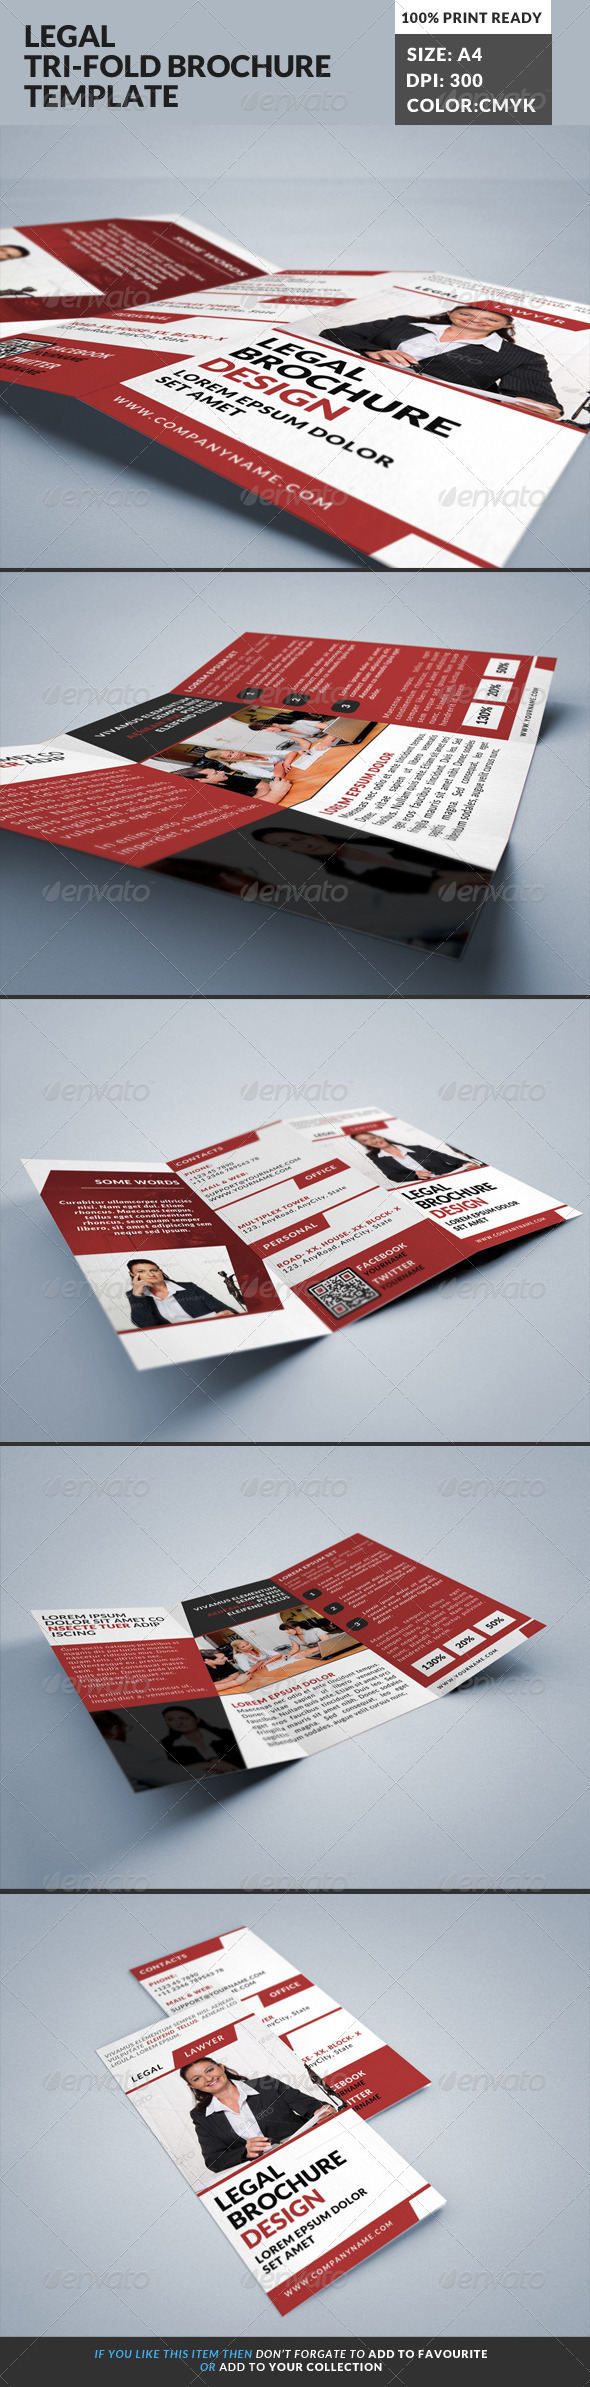 GraphicRiver Lawyer Legal Consultancy Tri-fold Brochure 2 8525333